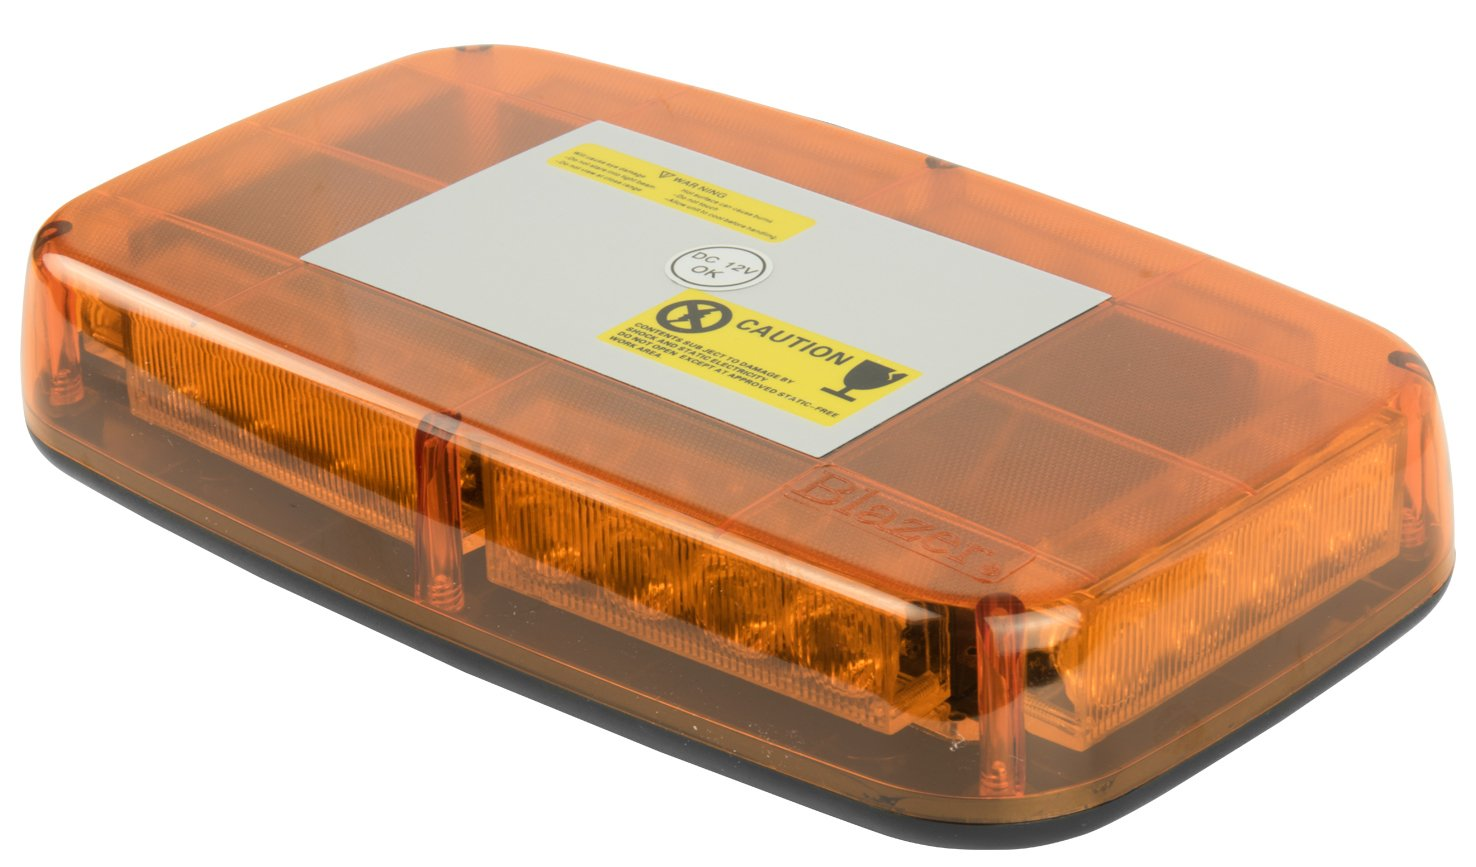 Blazer C4855AW LED Warning Light Bar with Magnetic Base, Amber